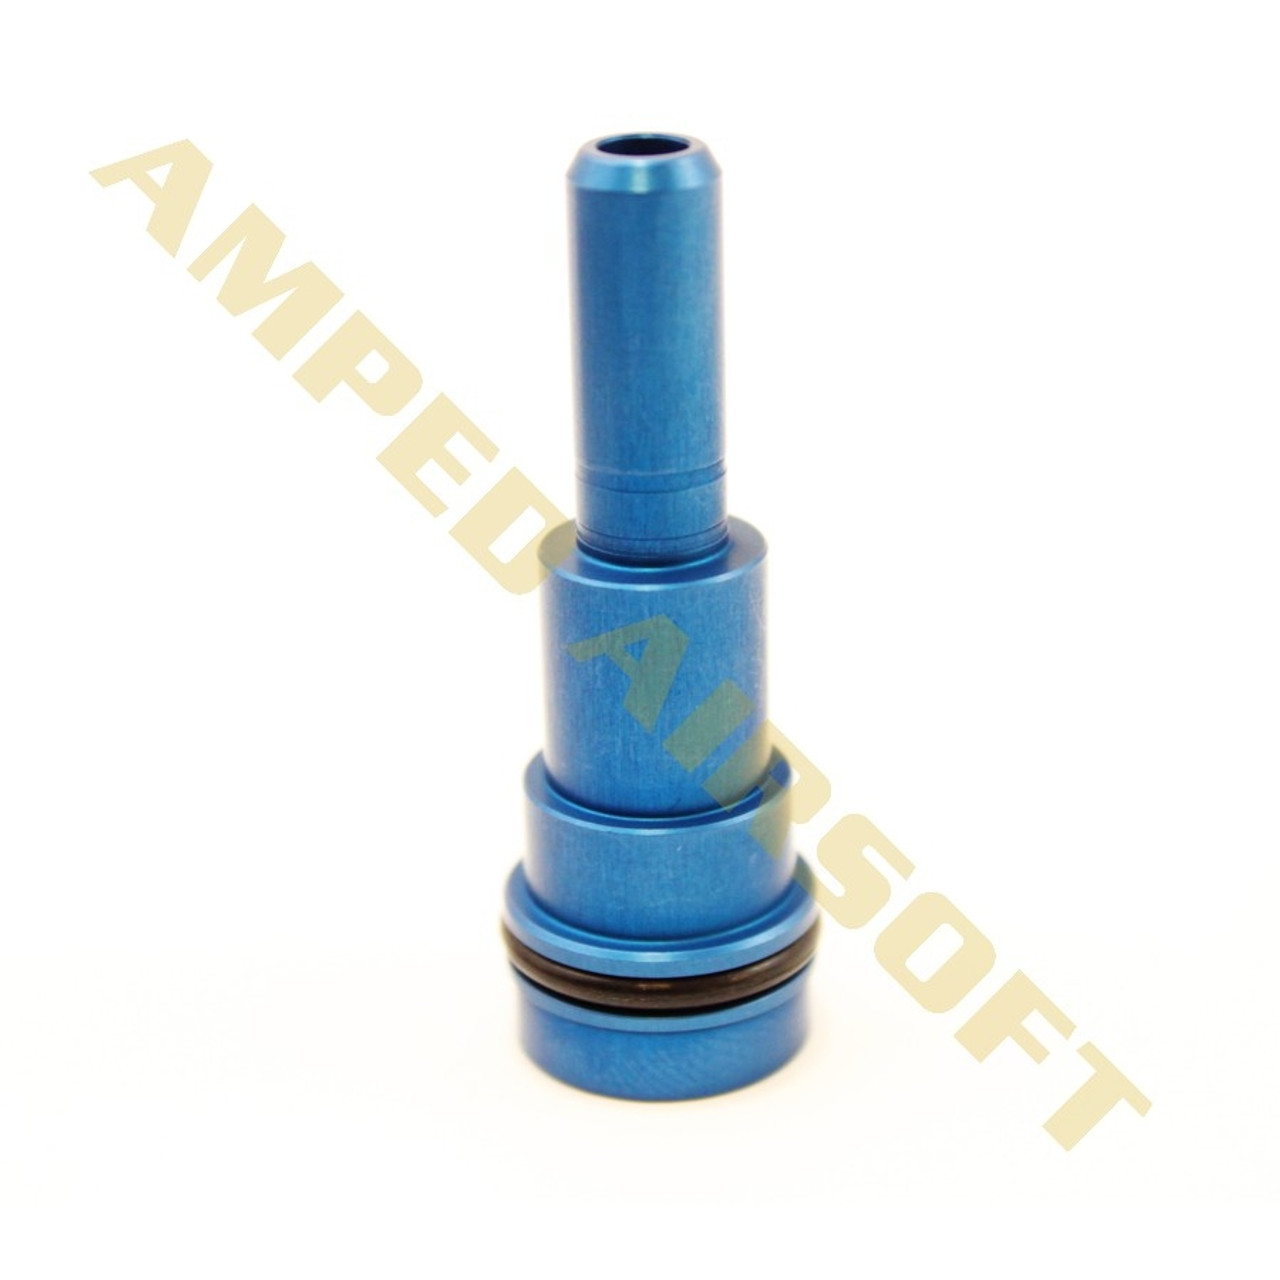 PolarStar - Fusion Engine Nozzle for MP5 (Blue: 380-435 FPS)